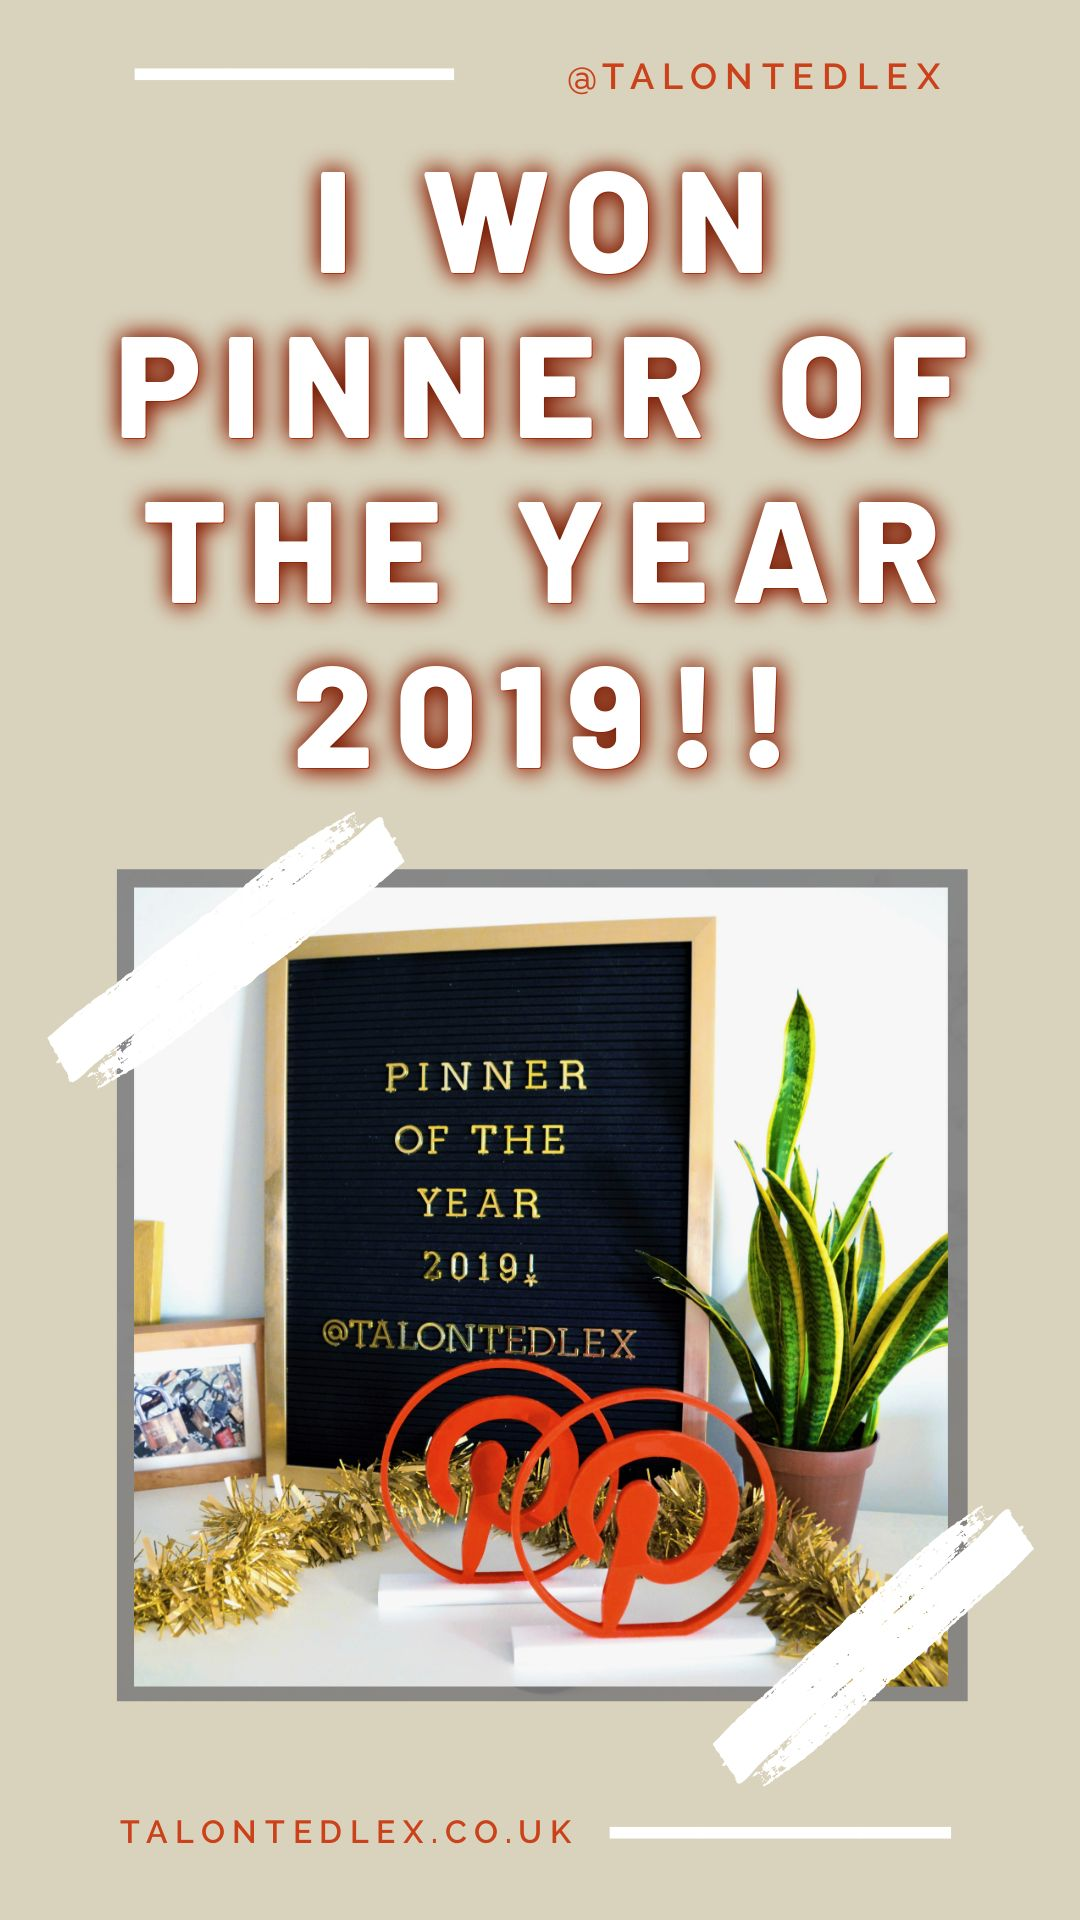 I'm Pinner Of The Year 2019! Read all about the recent Pinterest Awards on my blog. #talontedlex #pinneroftheyear #pinterestawards #pinterestmarketing #pinterestforbloggers